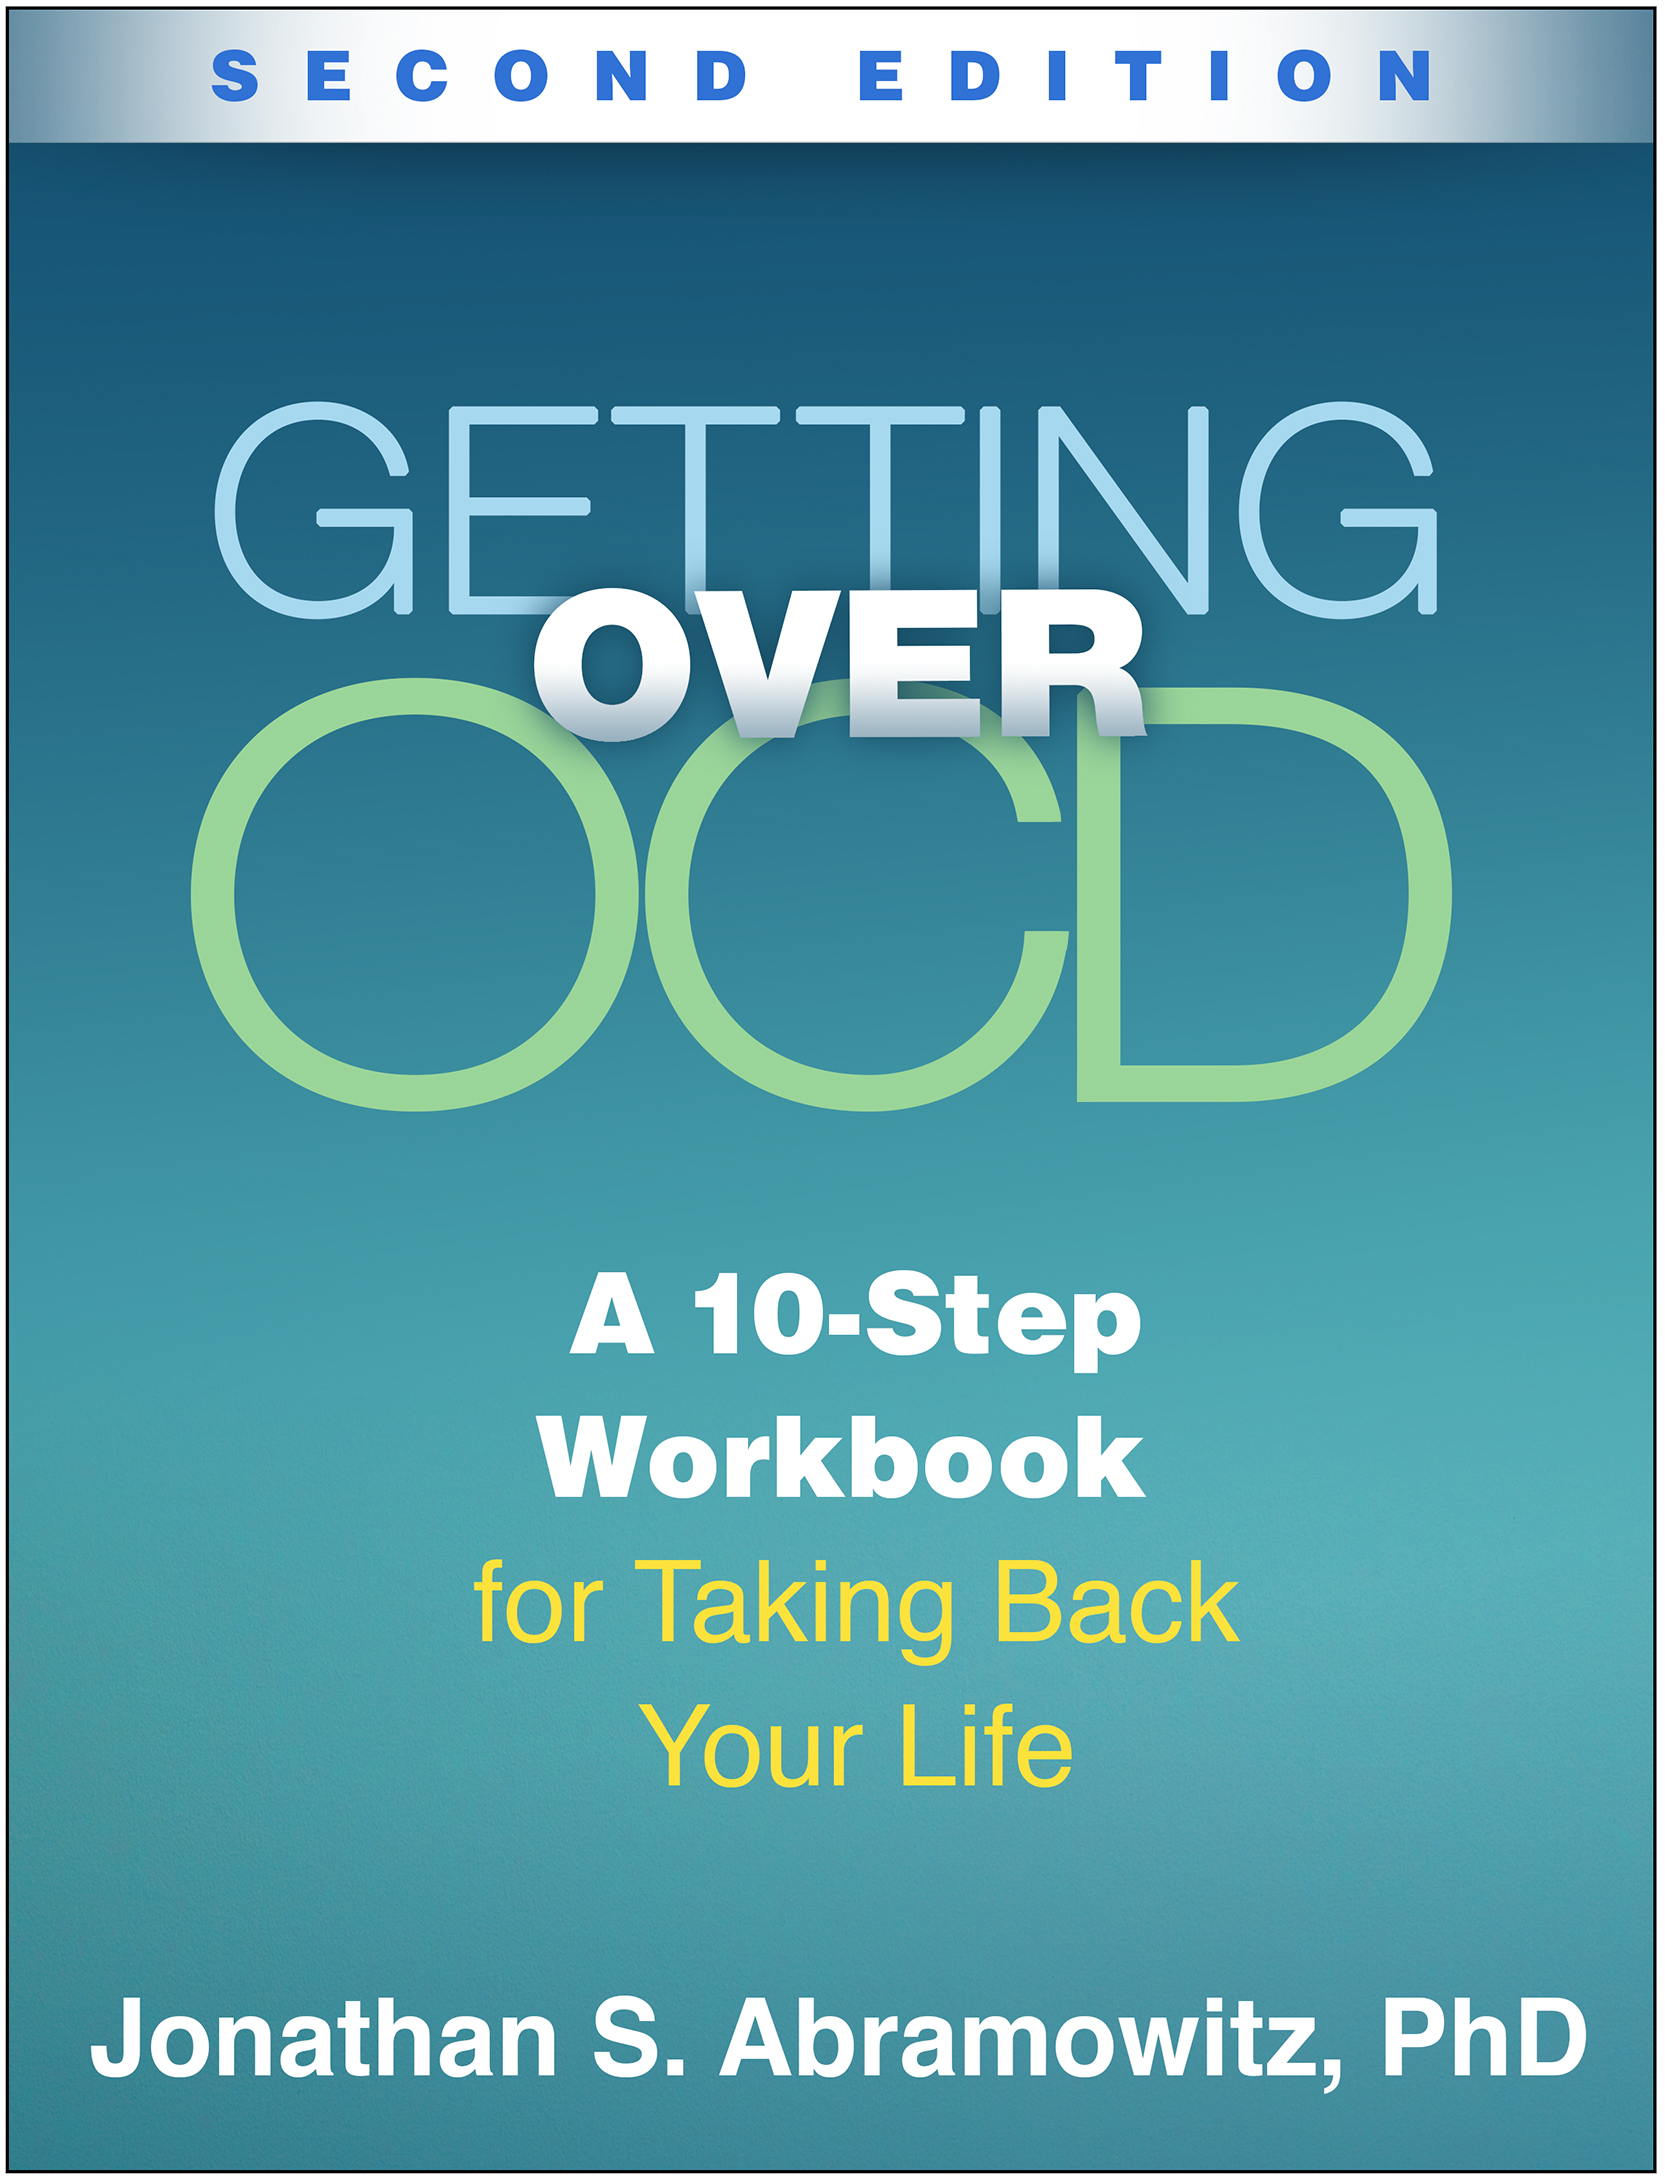 Getting Over OCD, Second Edition: A 10-Step Workbook for Taking Back Your Life book cover